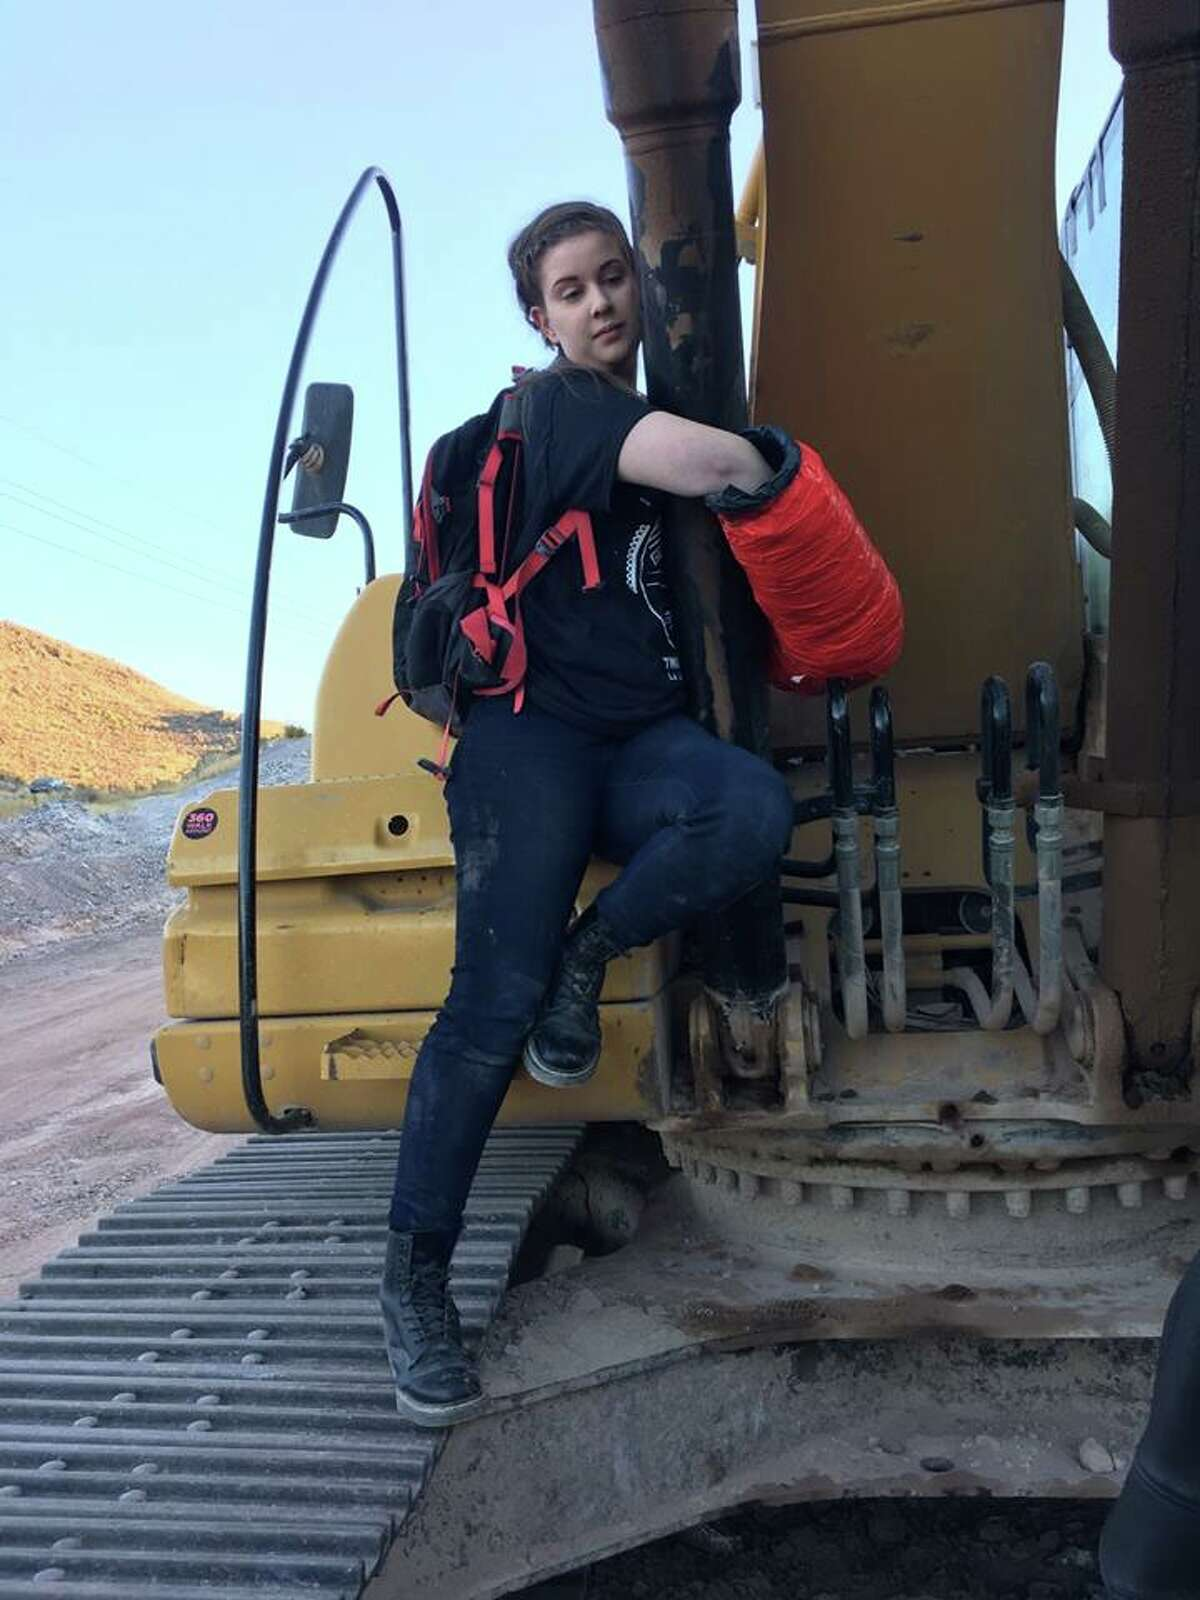 Anna Joy Kruger wrapped her arms around an excavator and then affixed them together with a cast. She could face a charge of criminal mischief, a felony.